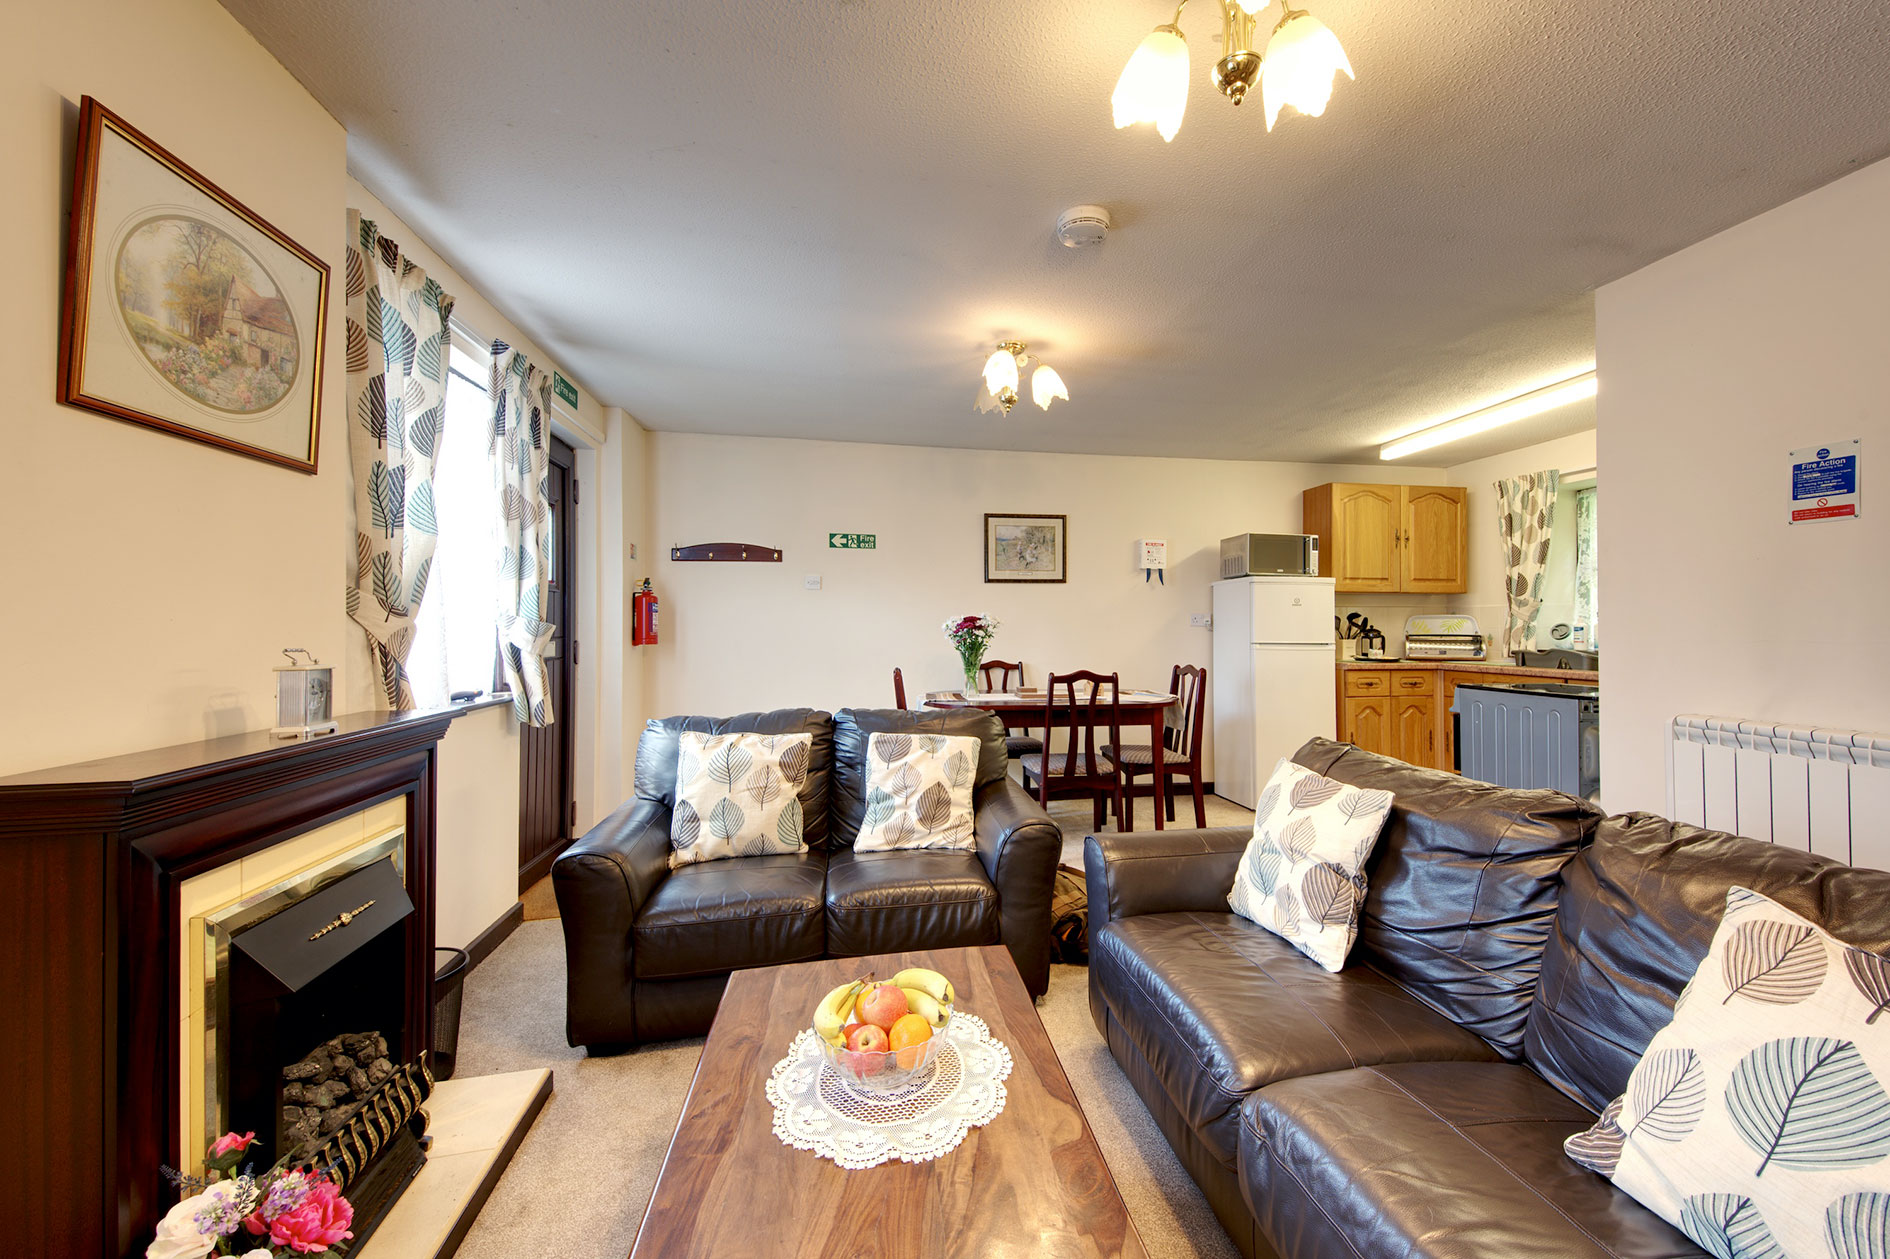 Living Room With Brown Leather Sofas And Kitchen And Dining Areas